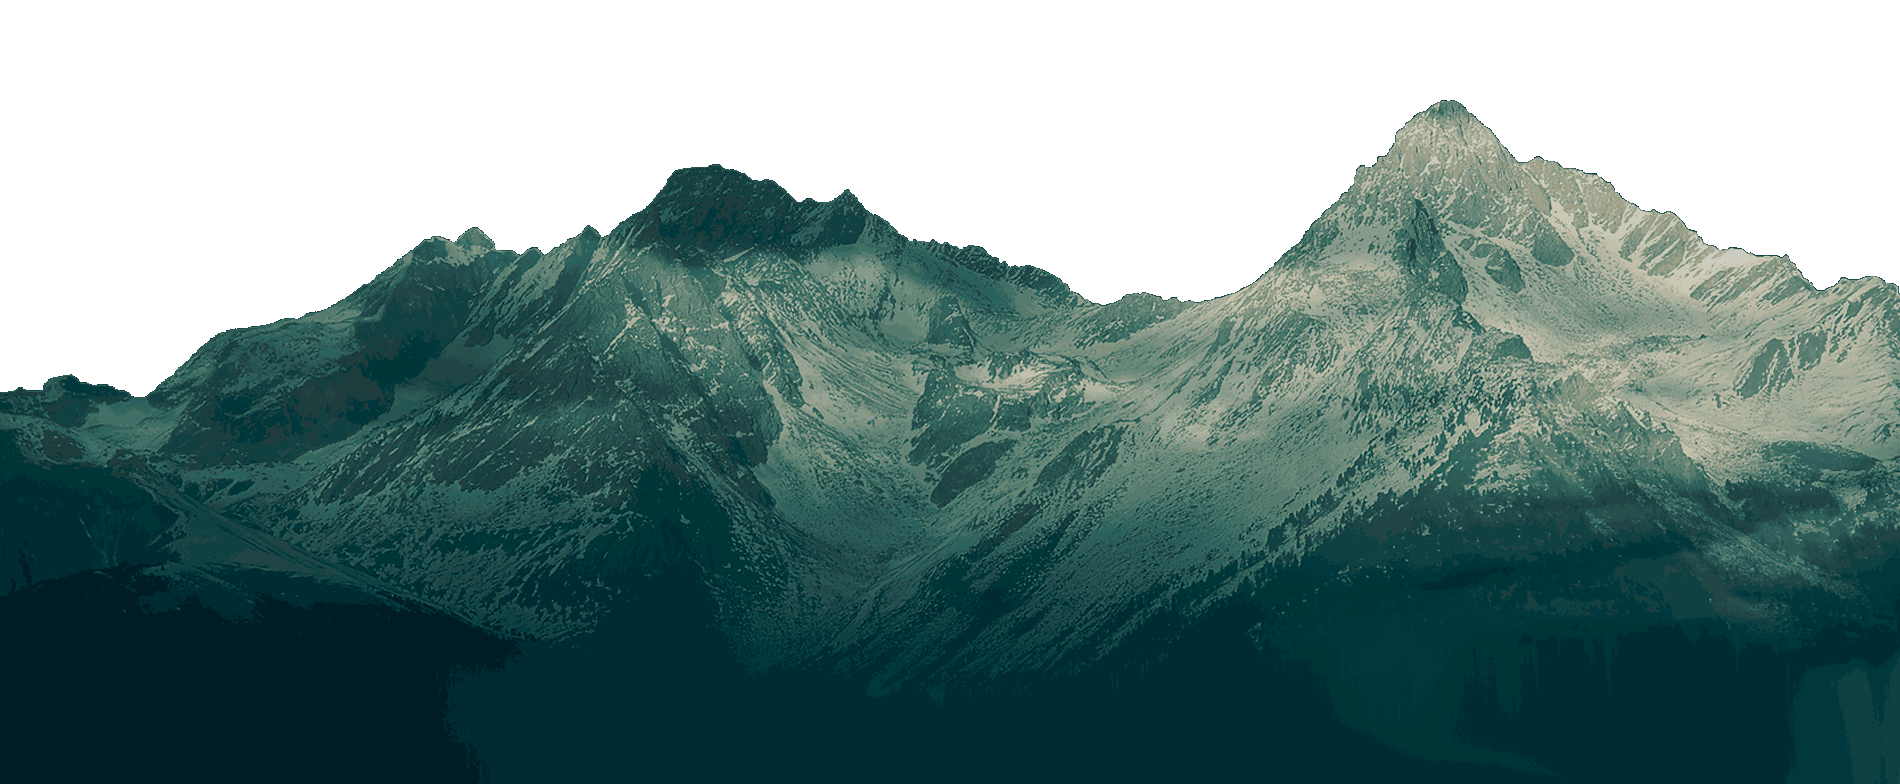 Free 3d Scenic Wallpaper Mountain Png Transparent Mountain Png Images Pluspng